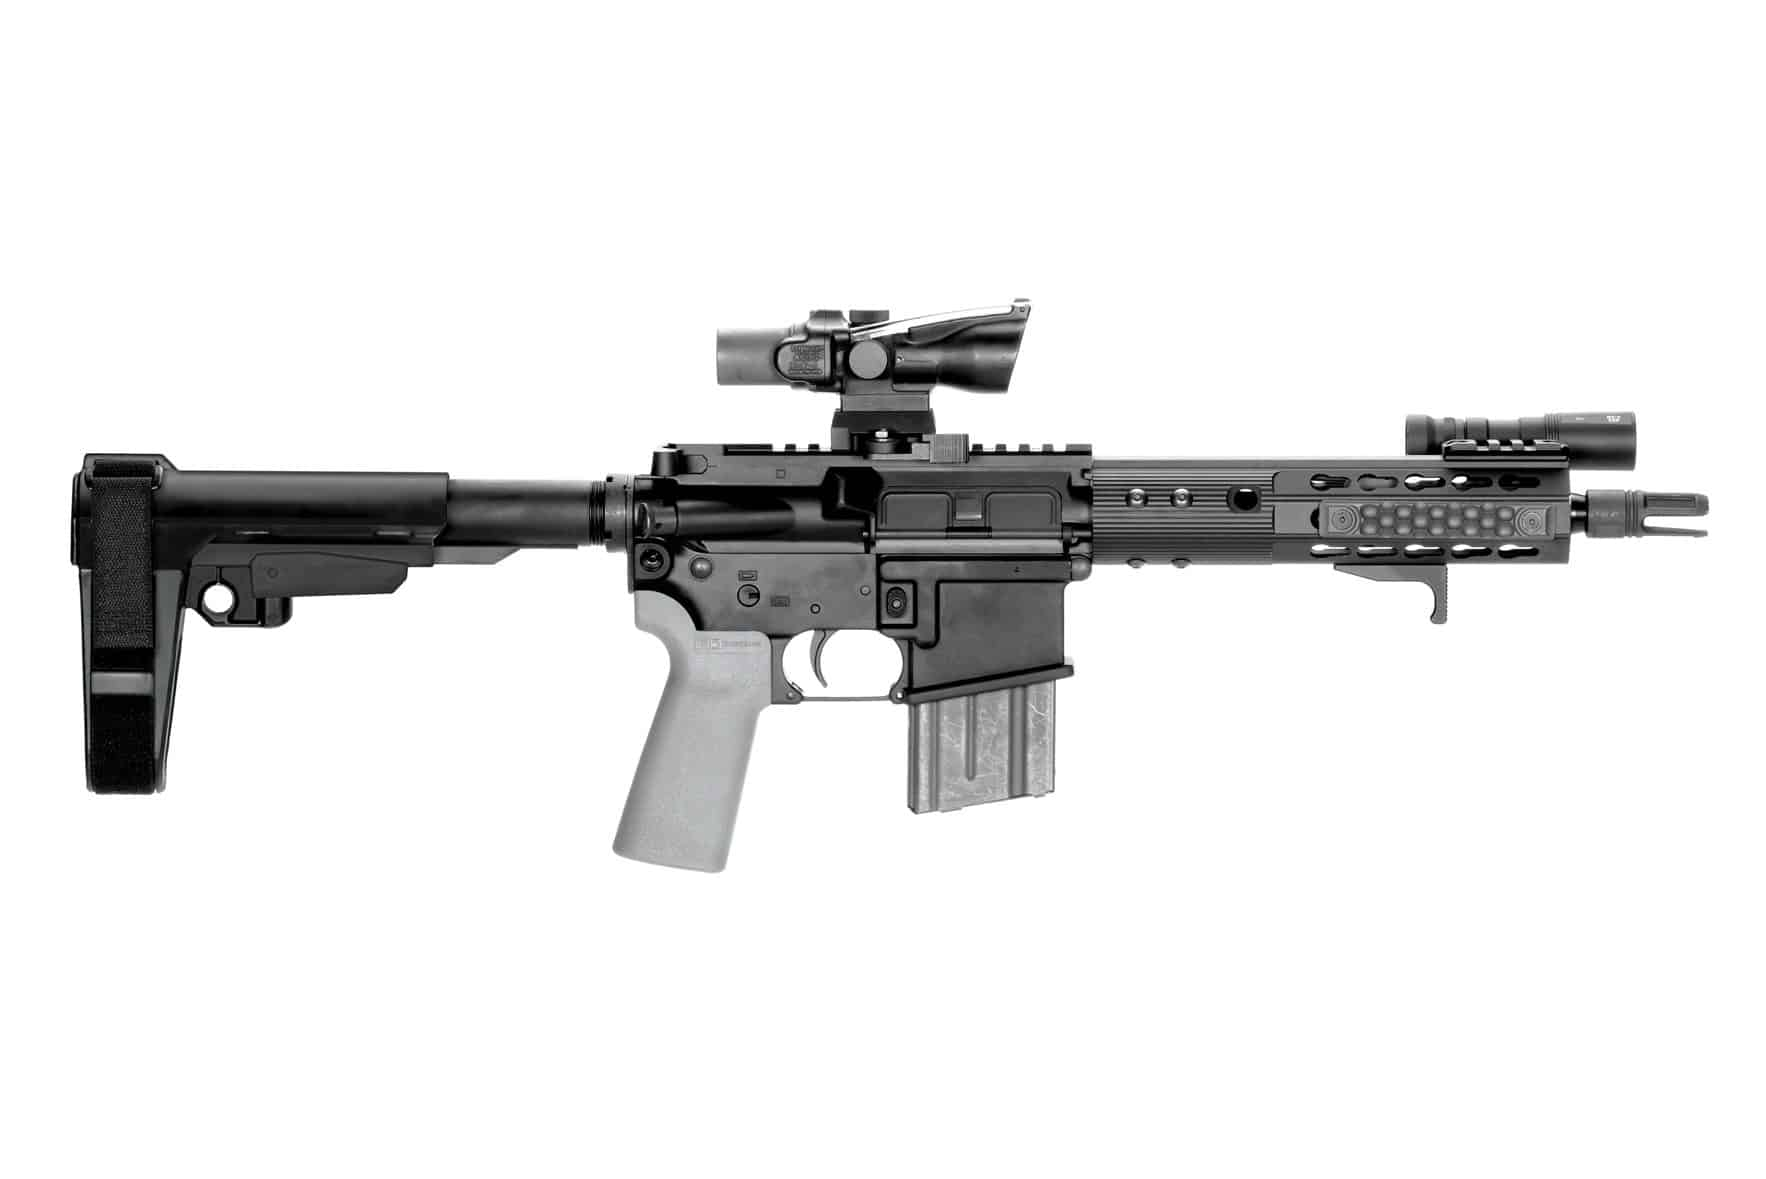 AR15 SB Tactical Mil-Spec Tube Stabilizing Brace SBA3 Fully extended on Pistol